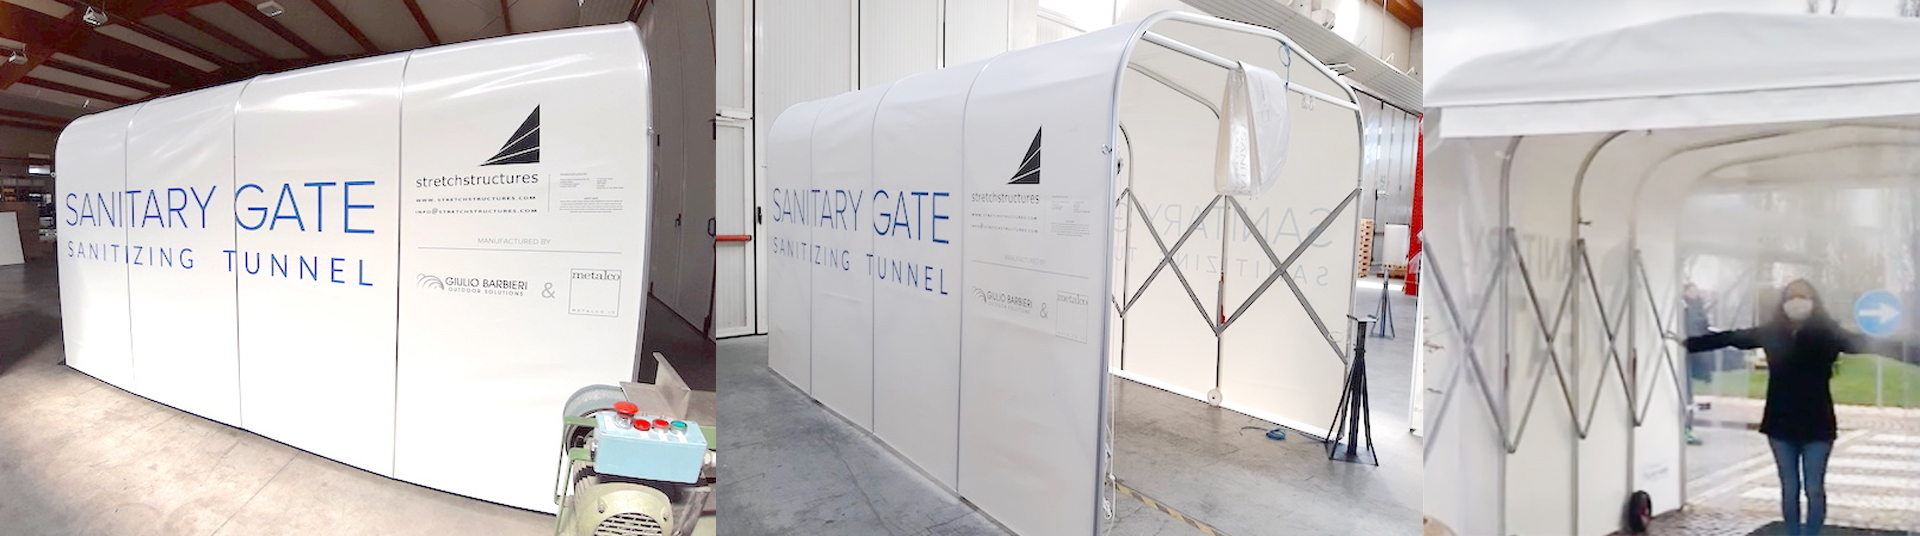 Covid 19 europe disinfectant station in UK disinfection tunnel covid 19 united kingdom disinfecting covid 19 united kingdom disinfection technology copy